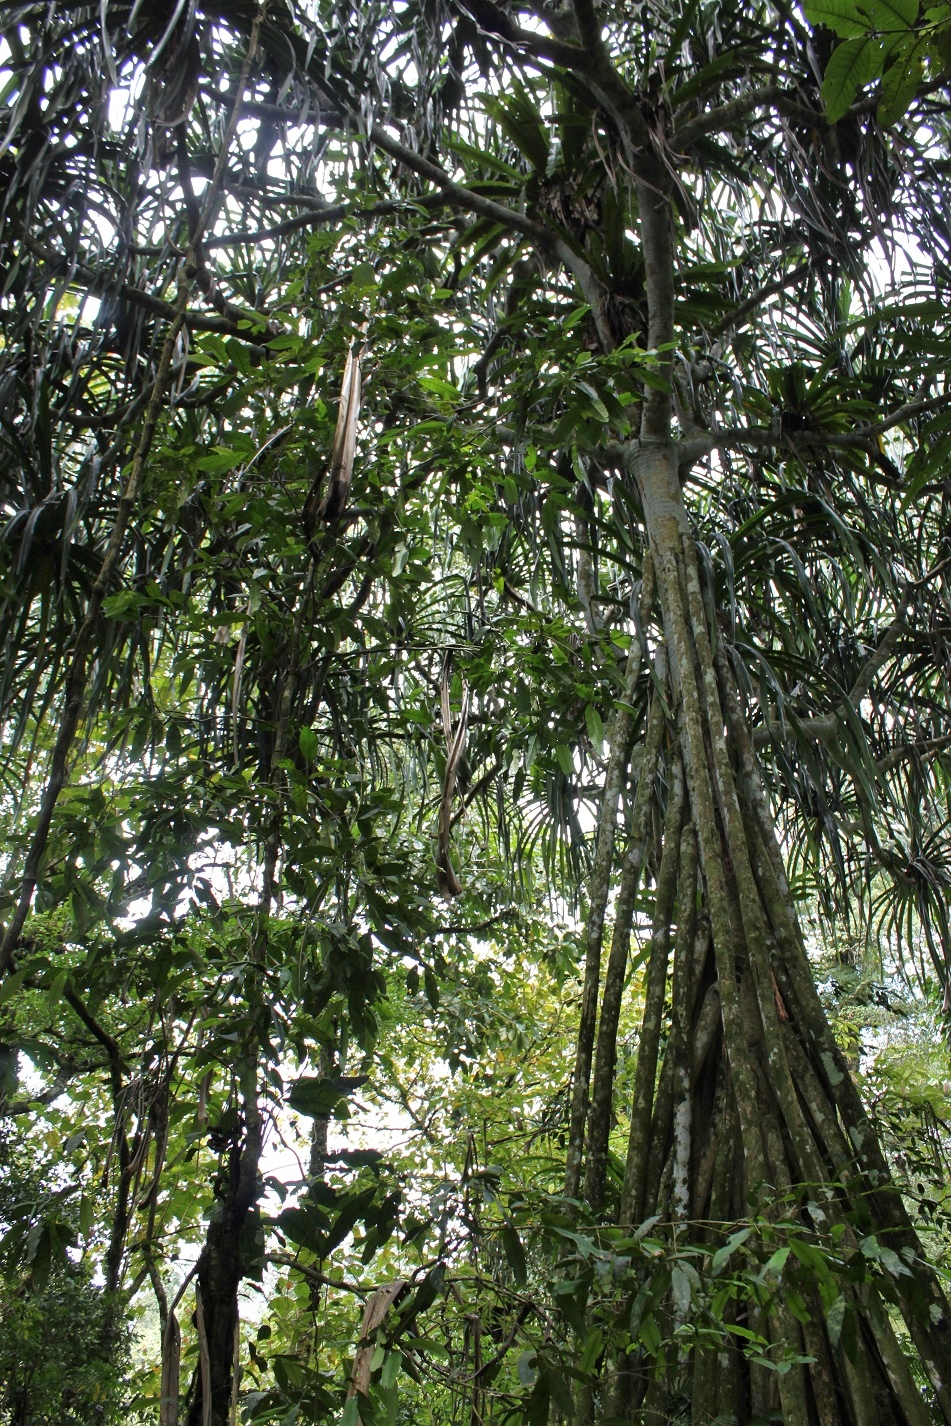 Giant Pandanus Trees Soar High above the Forest Floor